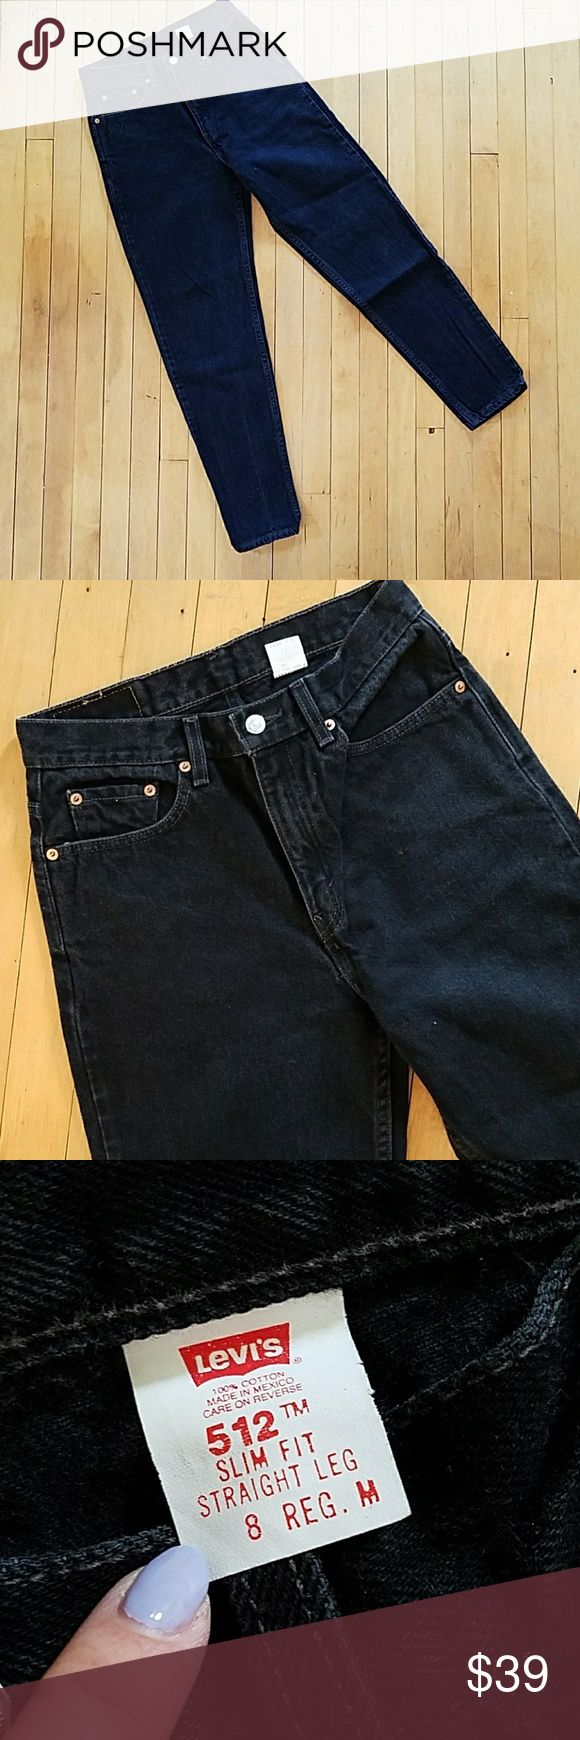 "Vintage Levi's 512 Mom Jeans Vintage Levi's 512 Mom Jeans 1980s 1990s vintage Highwaisted high rise Levi's 512 Jeans. Slim fit. Tapered Leg. Black wash rinse. Size 8 reg M. Please check mesurements for proper fit.   Waist 13"" Thigh 11"" Rise 11.5"" Inseam 29"" Hip 19"""" Leg opening 6.5"" Measurements taken while jeans laid flat. Please use measurements as size guide.  Model photo for style inspiration, not actual jeans. Excellent condition. Levi's Jeans"